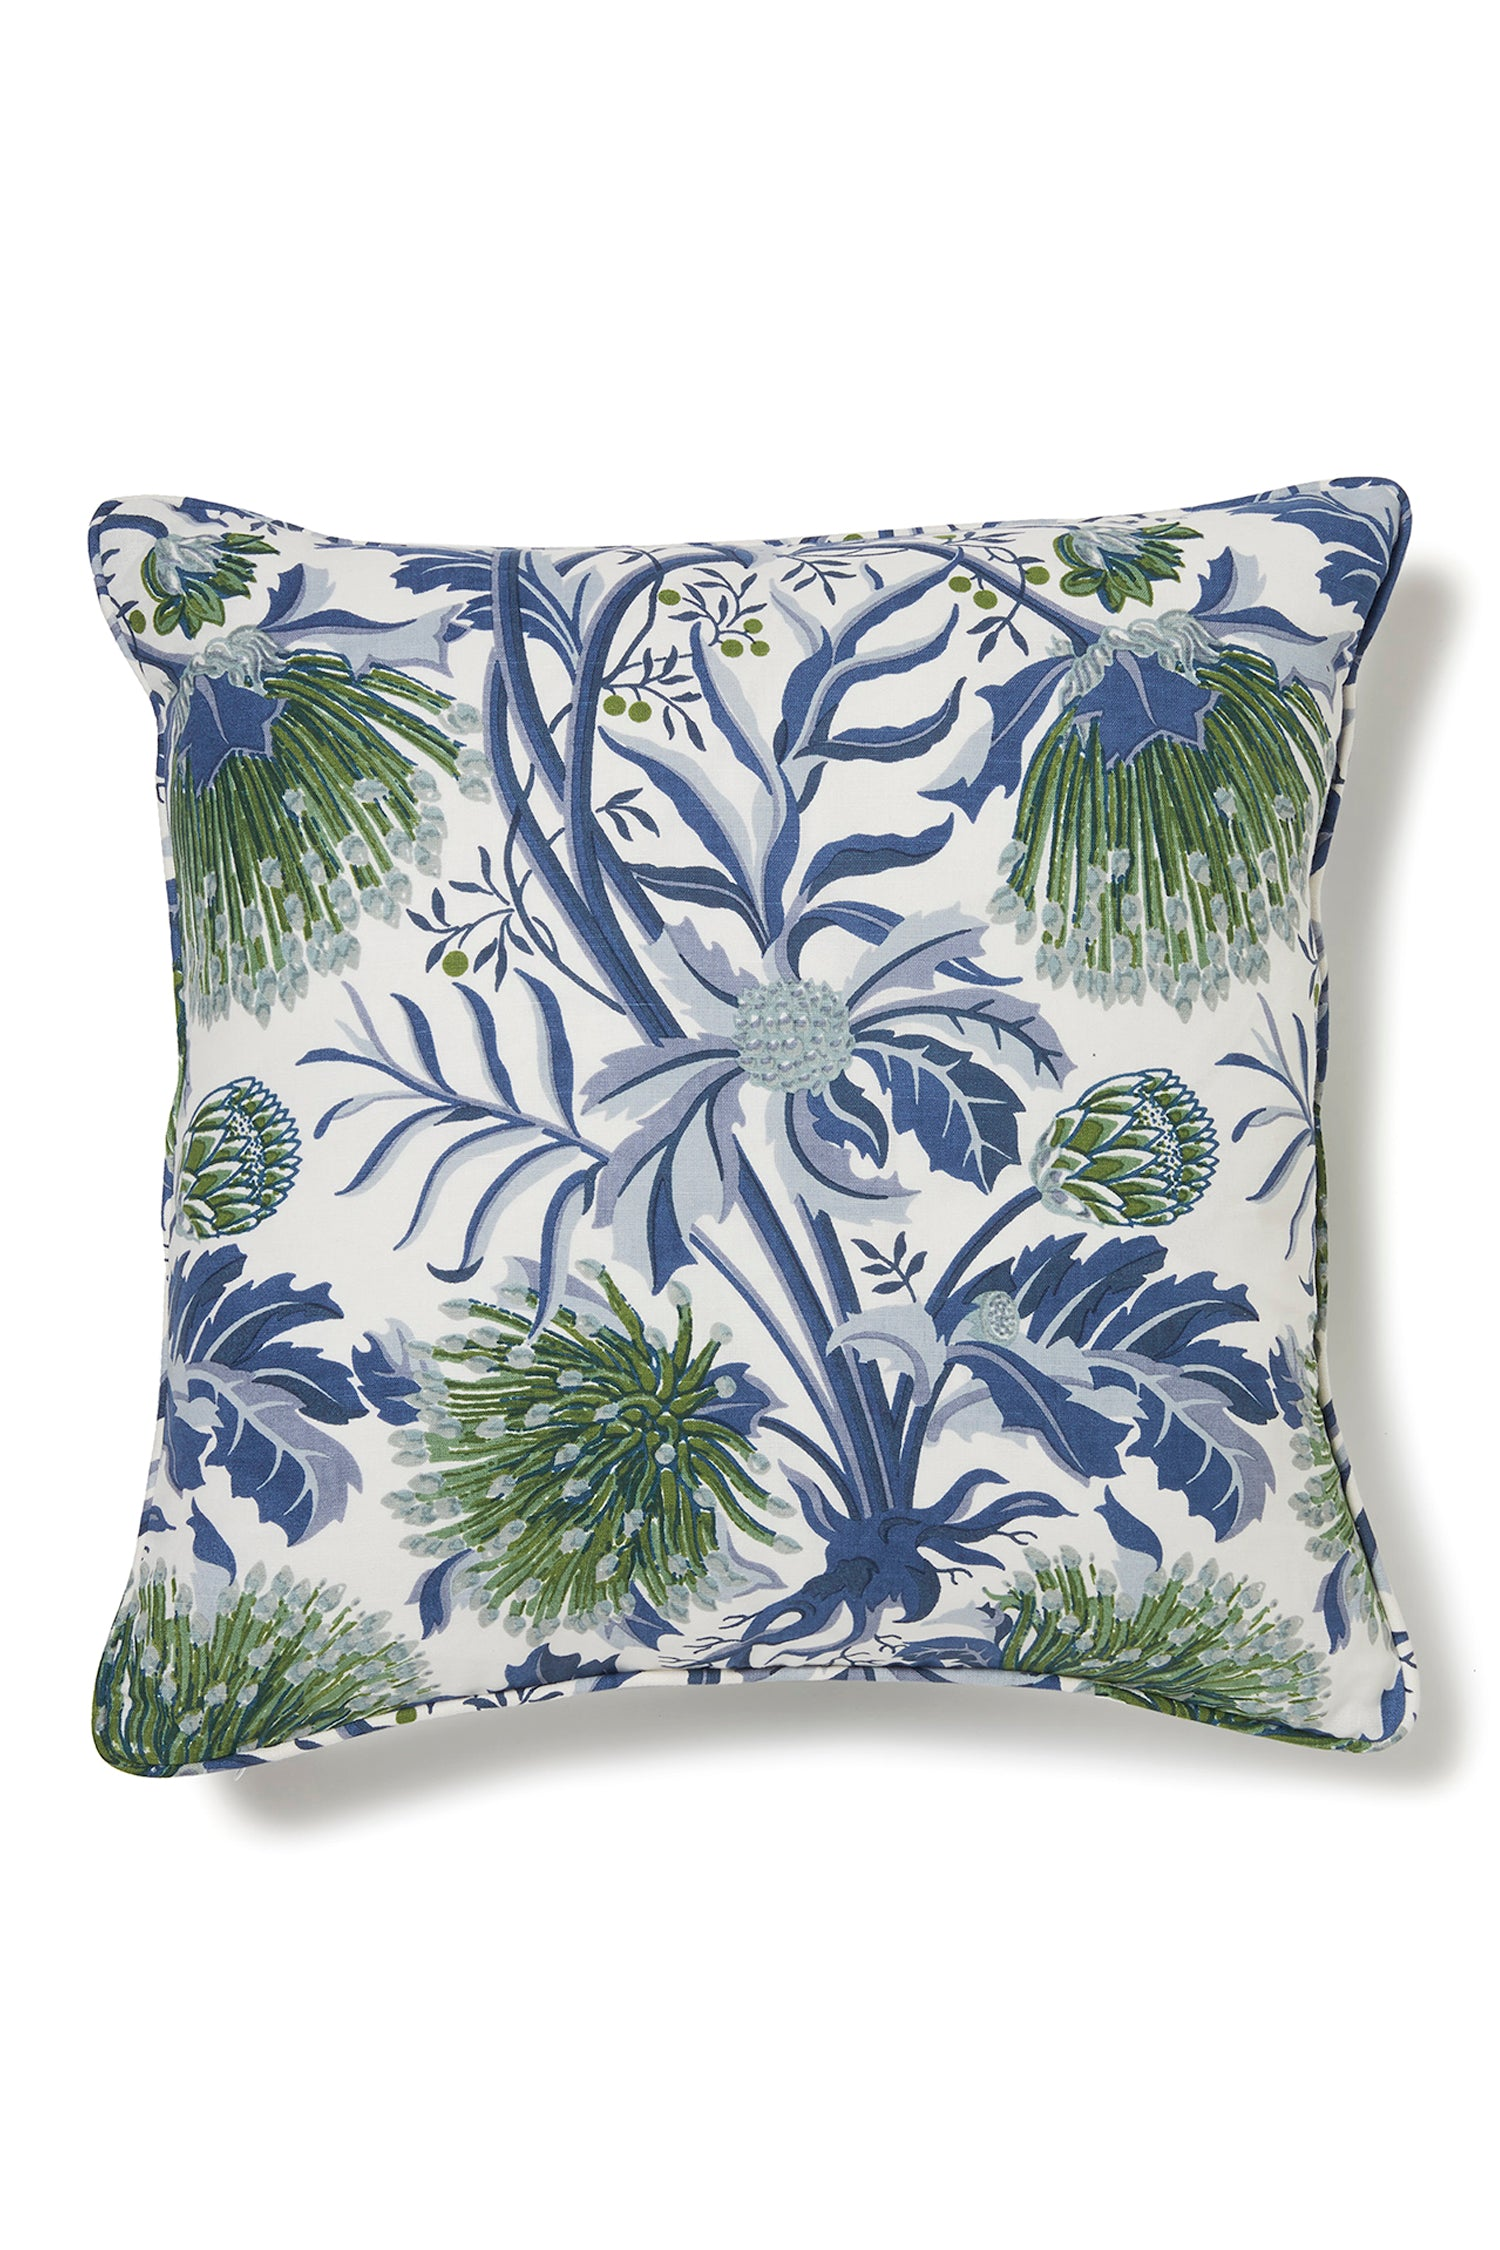 UTOPIA GOODS - 50 X 50CM CUSHION COVER - MATCHSTICK BANKSIA BLUE